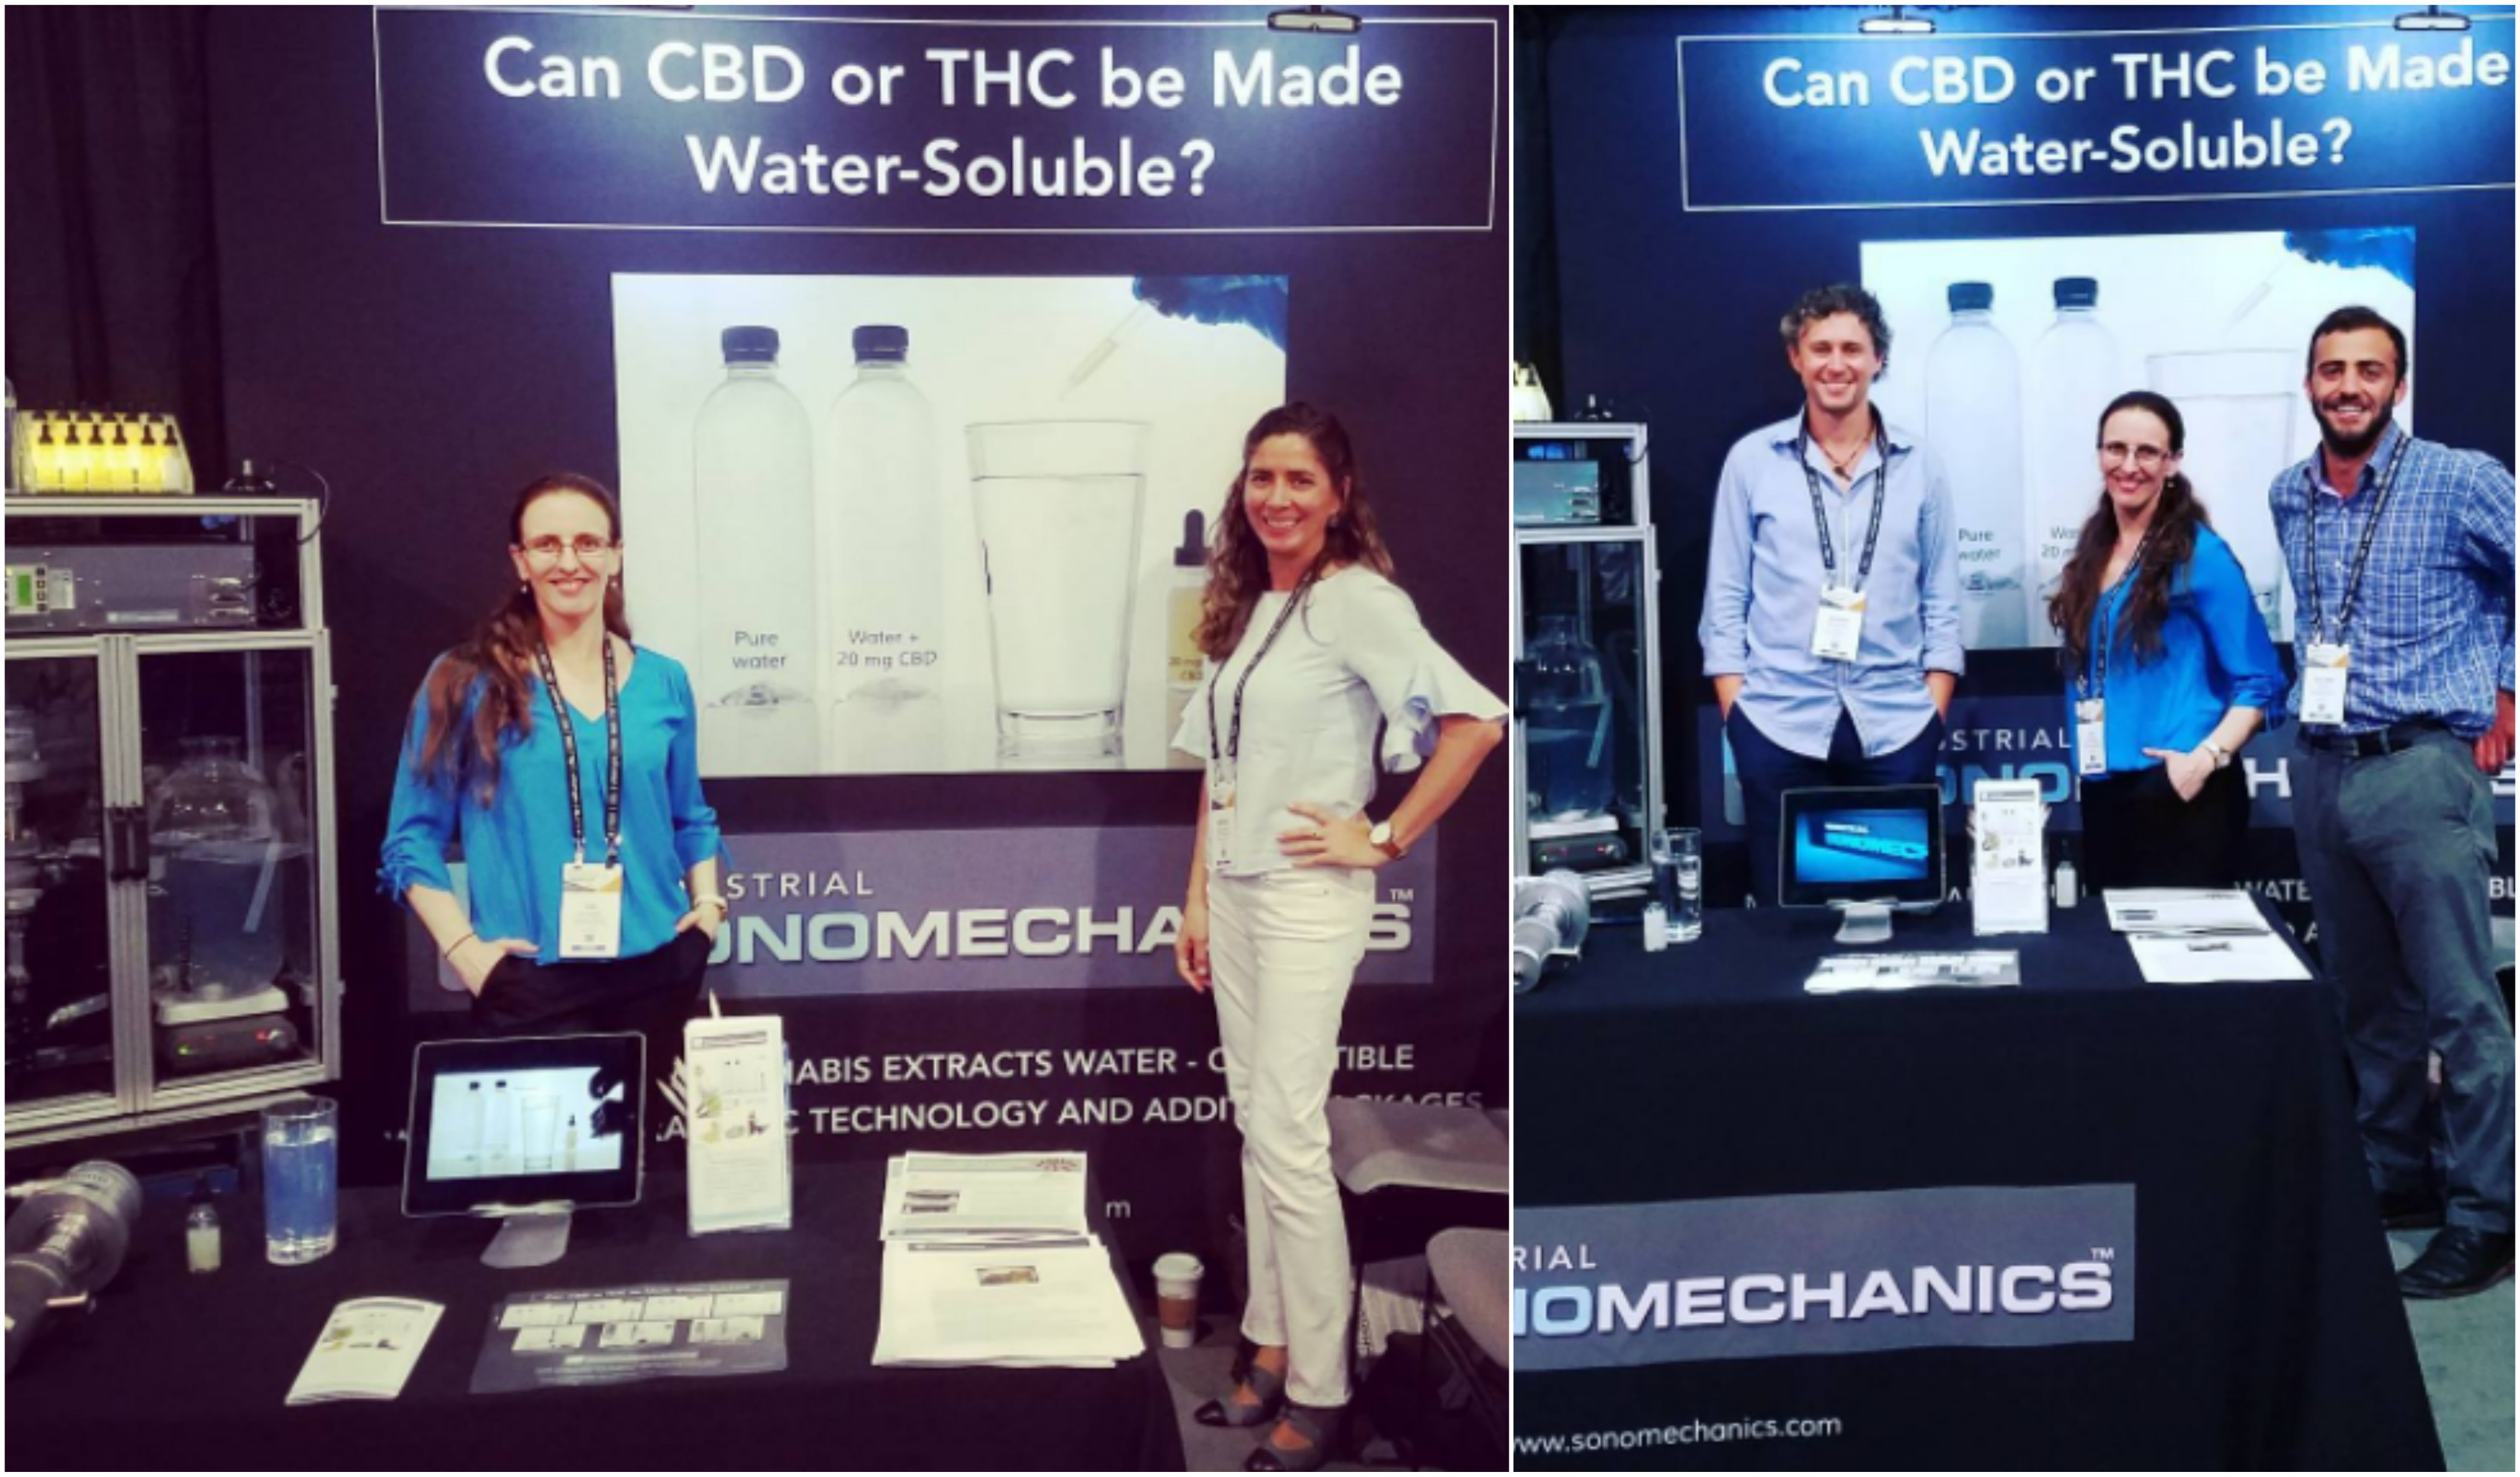 Industrial Sonomechanics' booth at the 2017 MJBiz Conference and Expo - Iva, Marina, Alexey and Shlomo